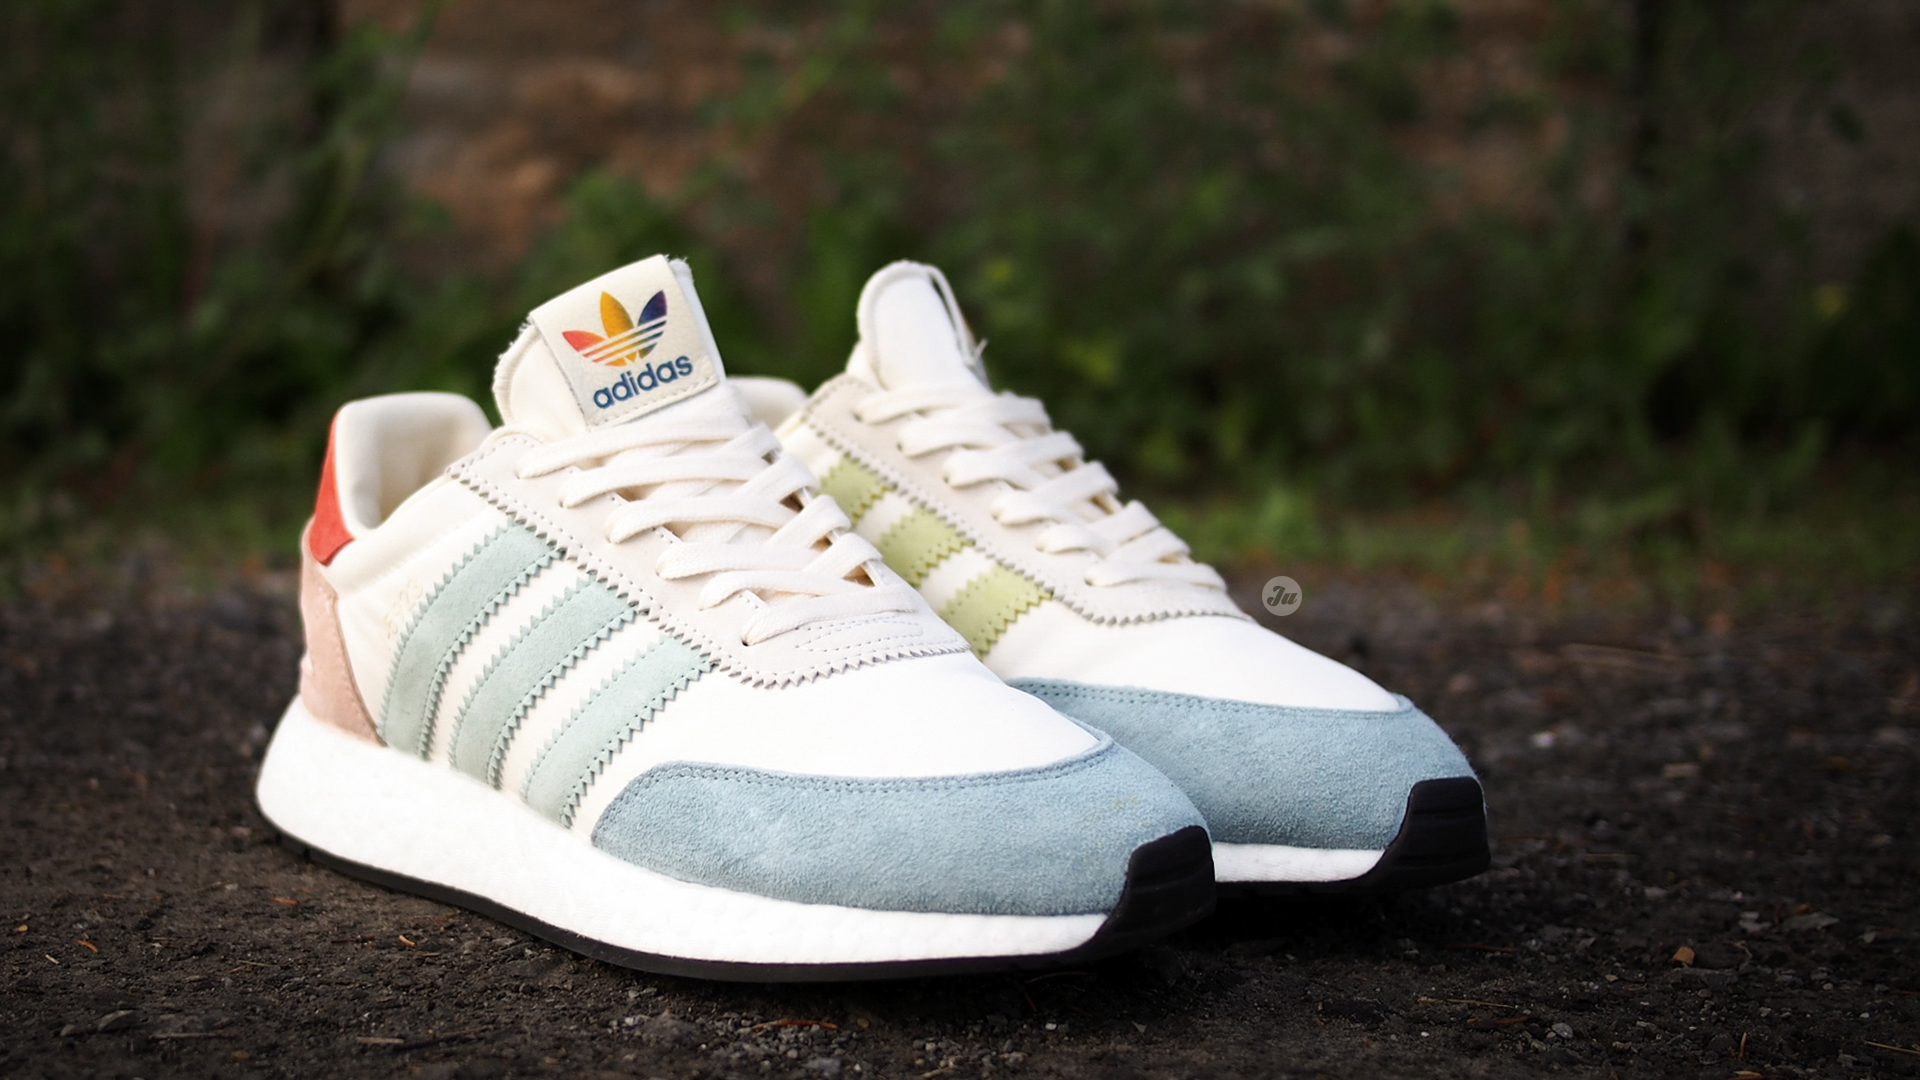 First Adidas kicks in a long time: a review of the I 5923